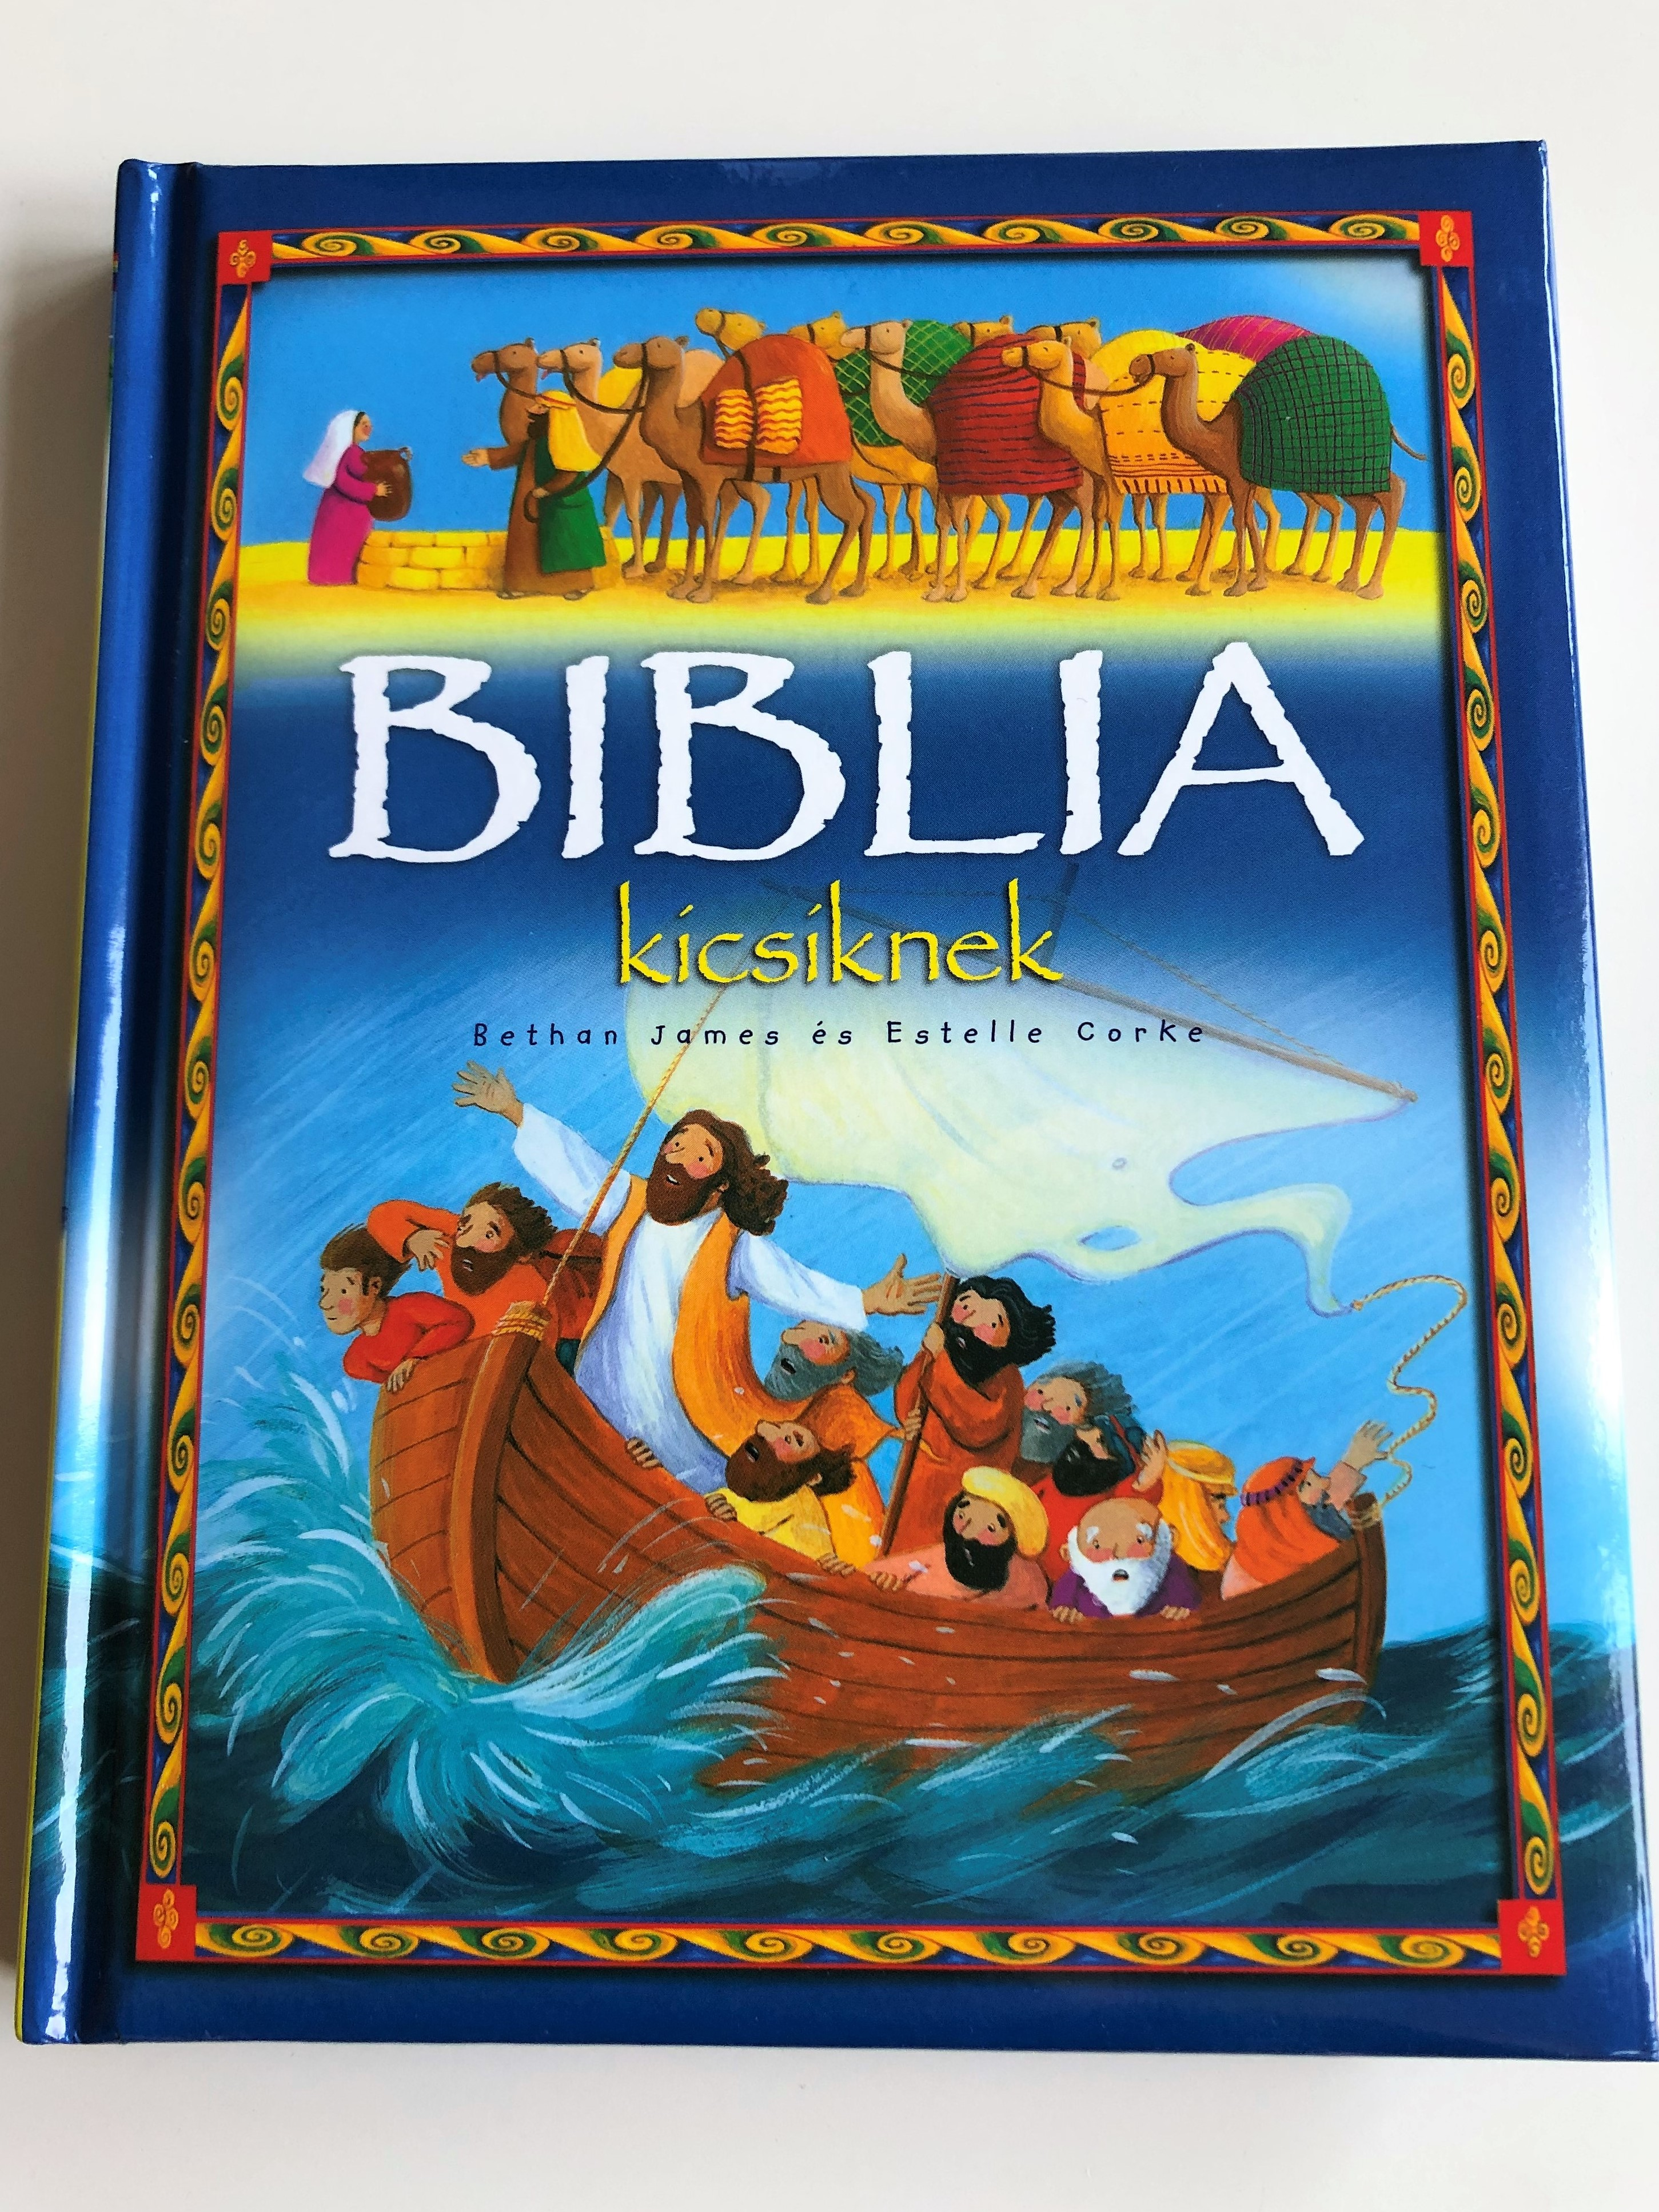 biblia-kicsiknek-by-bethan-james-and-estelle-corke-hungarian-translation-of-my-bible-story-book-hardcover-2013-napraforg-kiad-1-.jpg